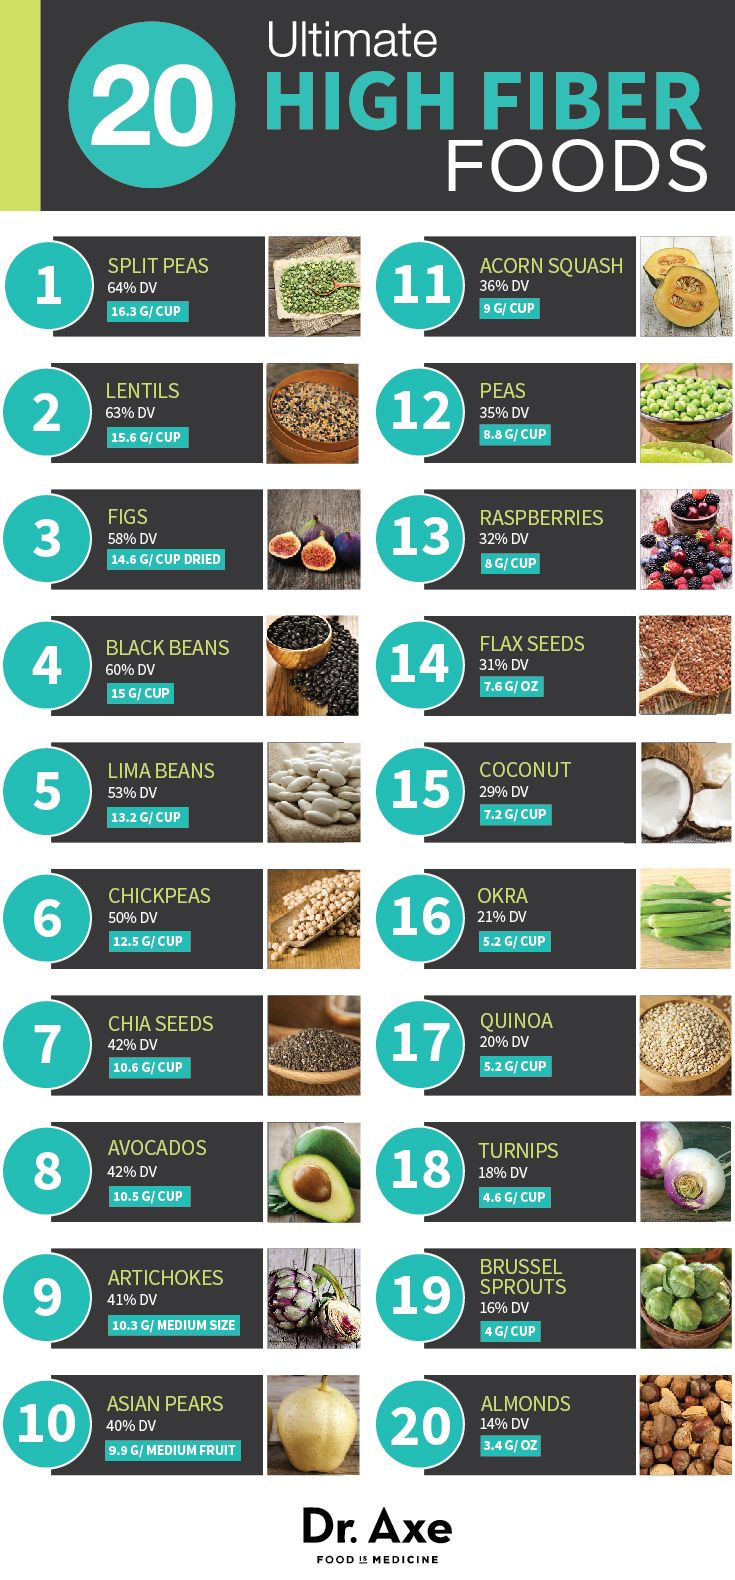 Fibre is essential for good digestion and helps utilise the food we eat to maximum efficiency. Go with your gut and ensure you get your daily fibre from a variety of these sources.